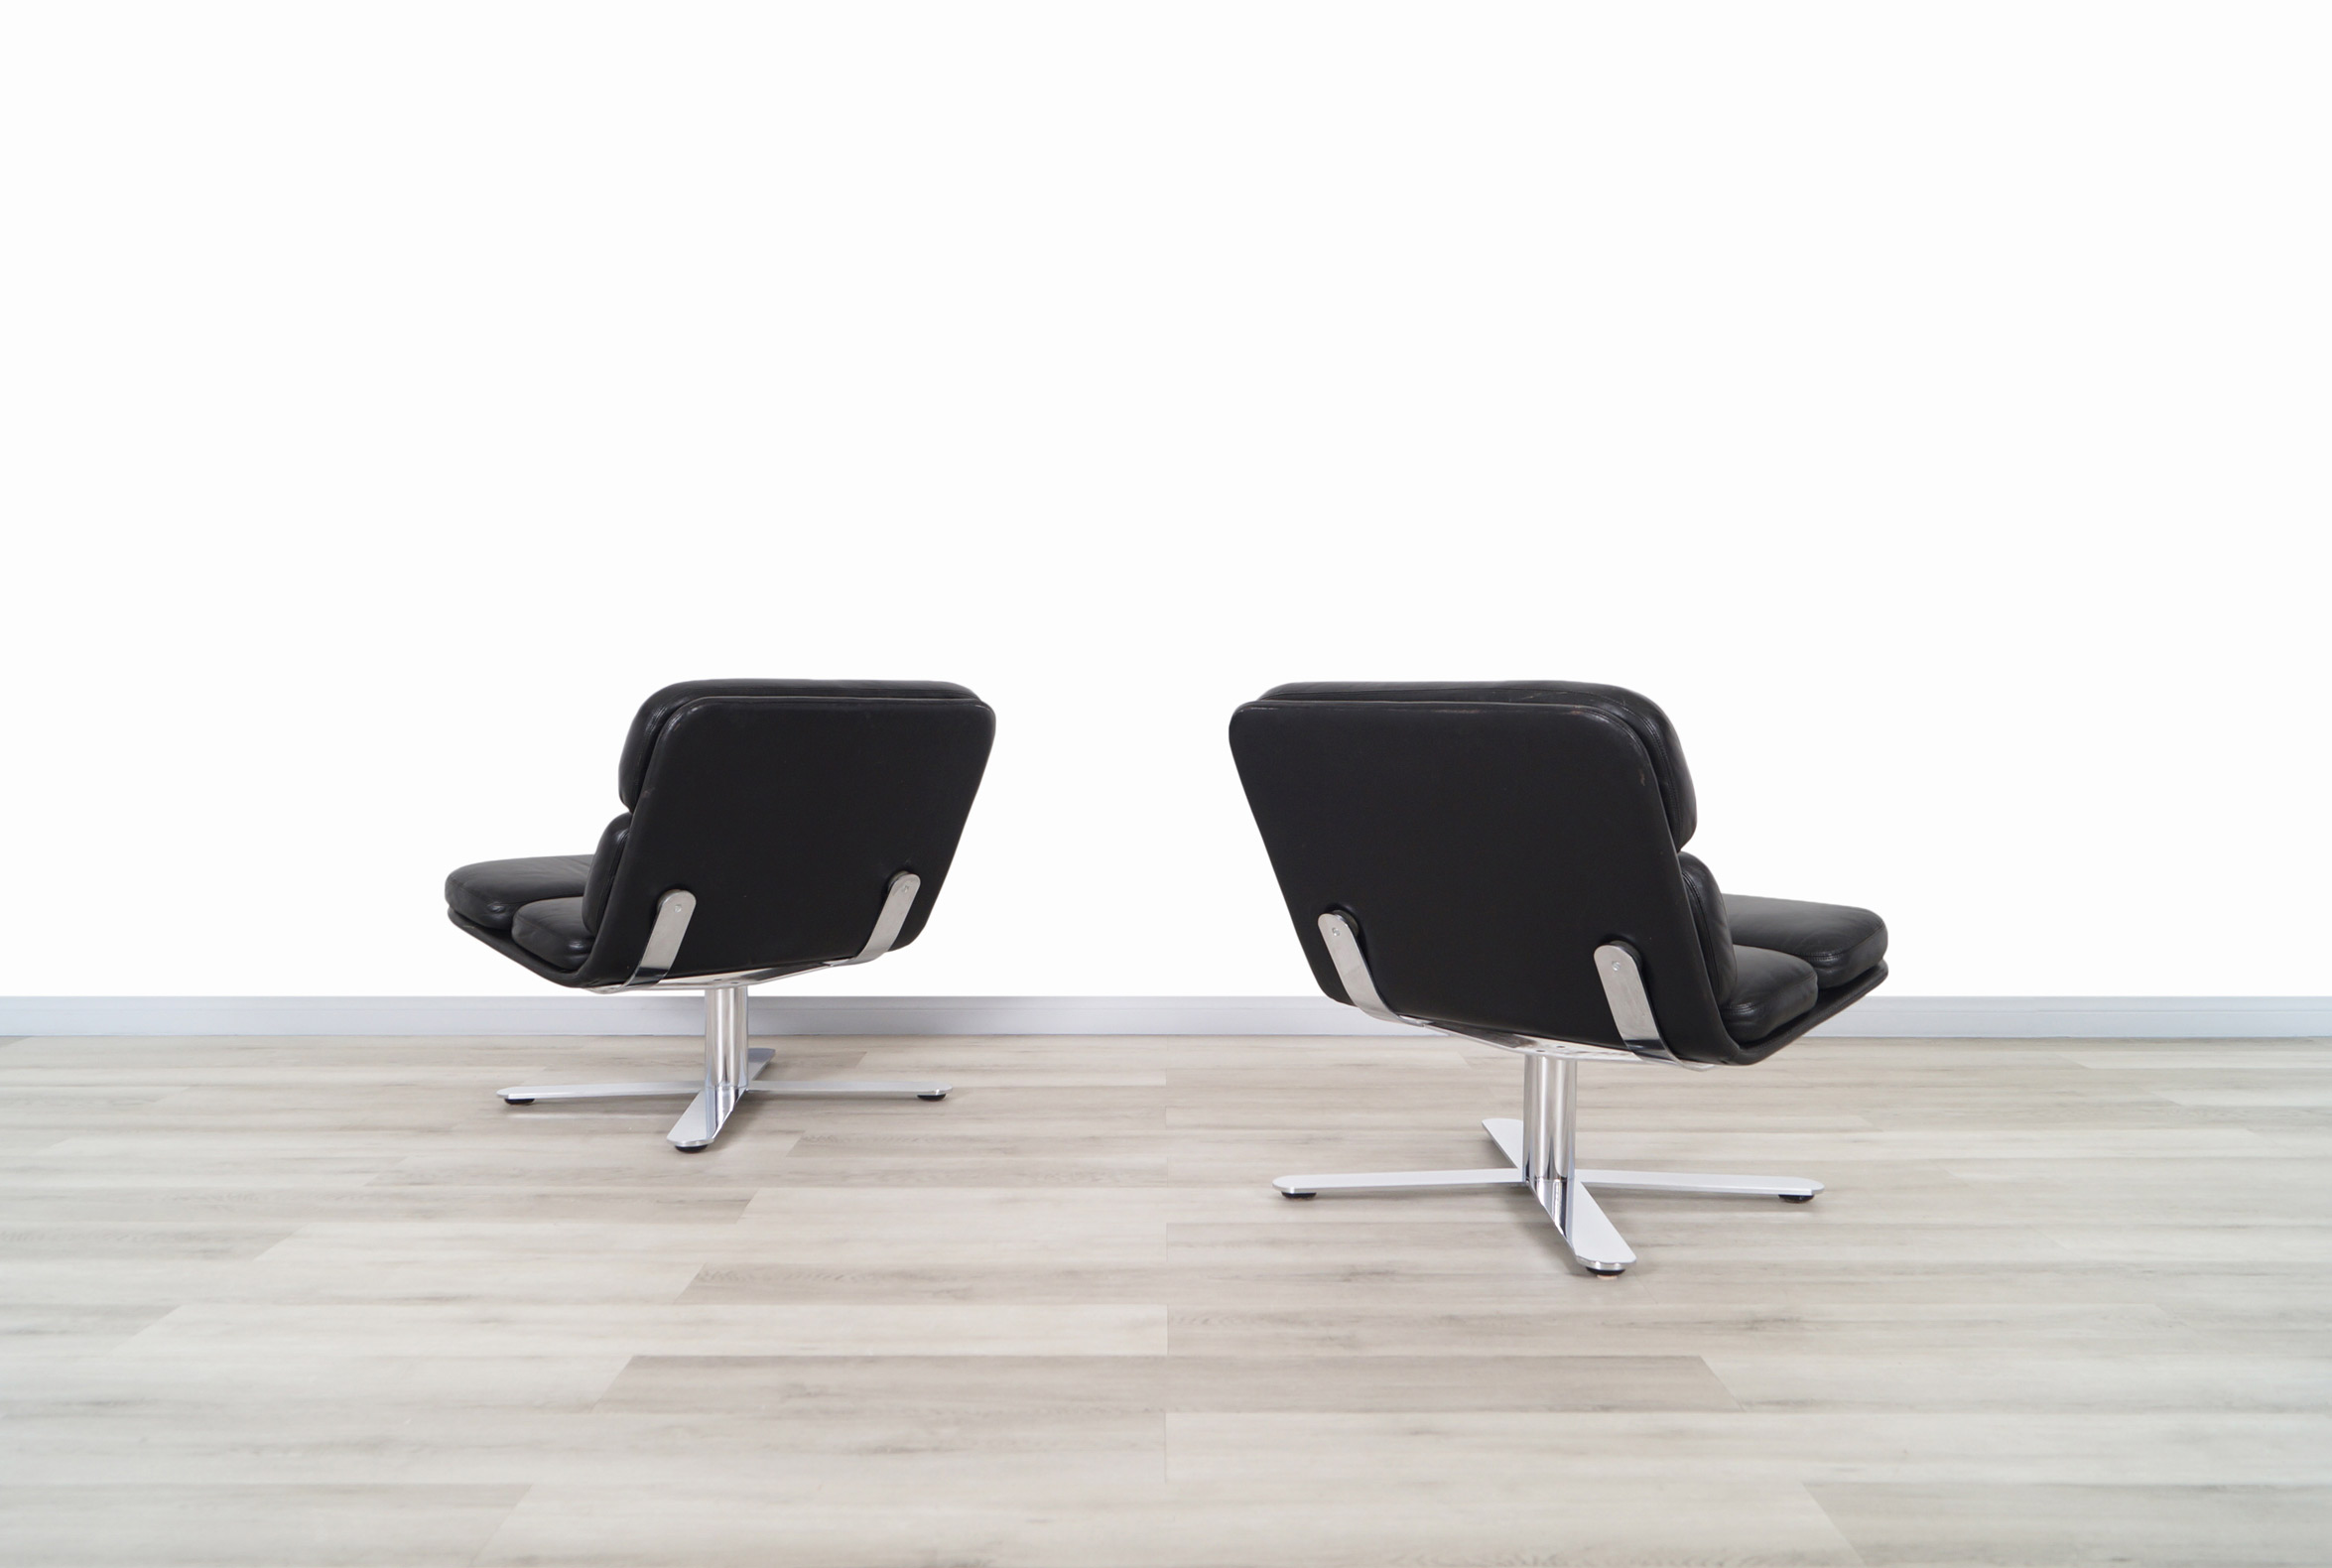 Vintage Leather Solo Lounge Chairs by John Follis for Fortress